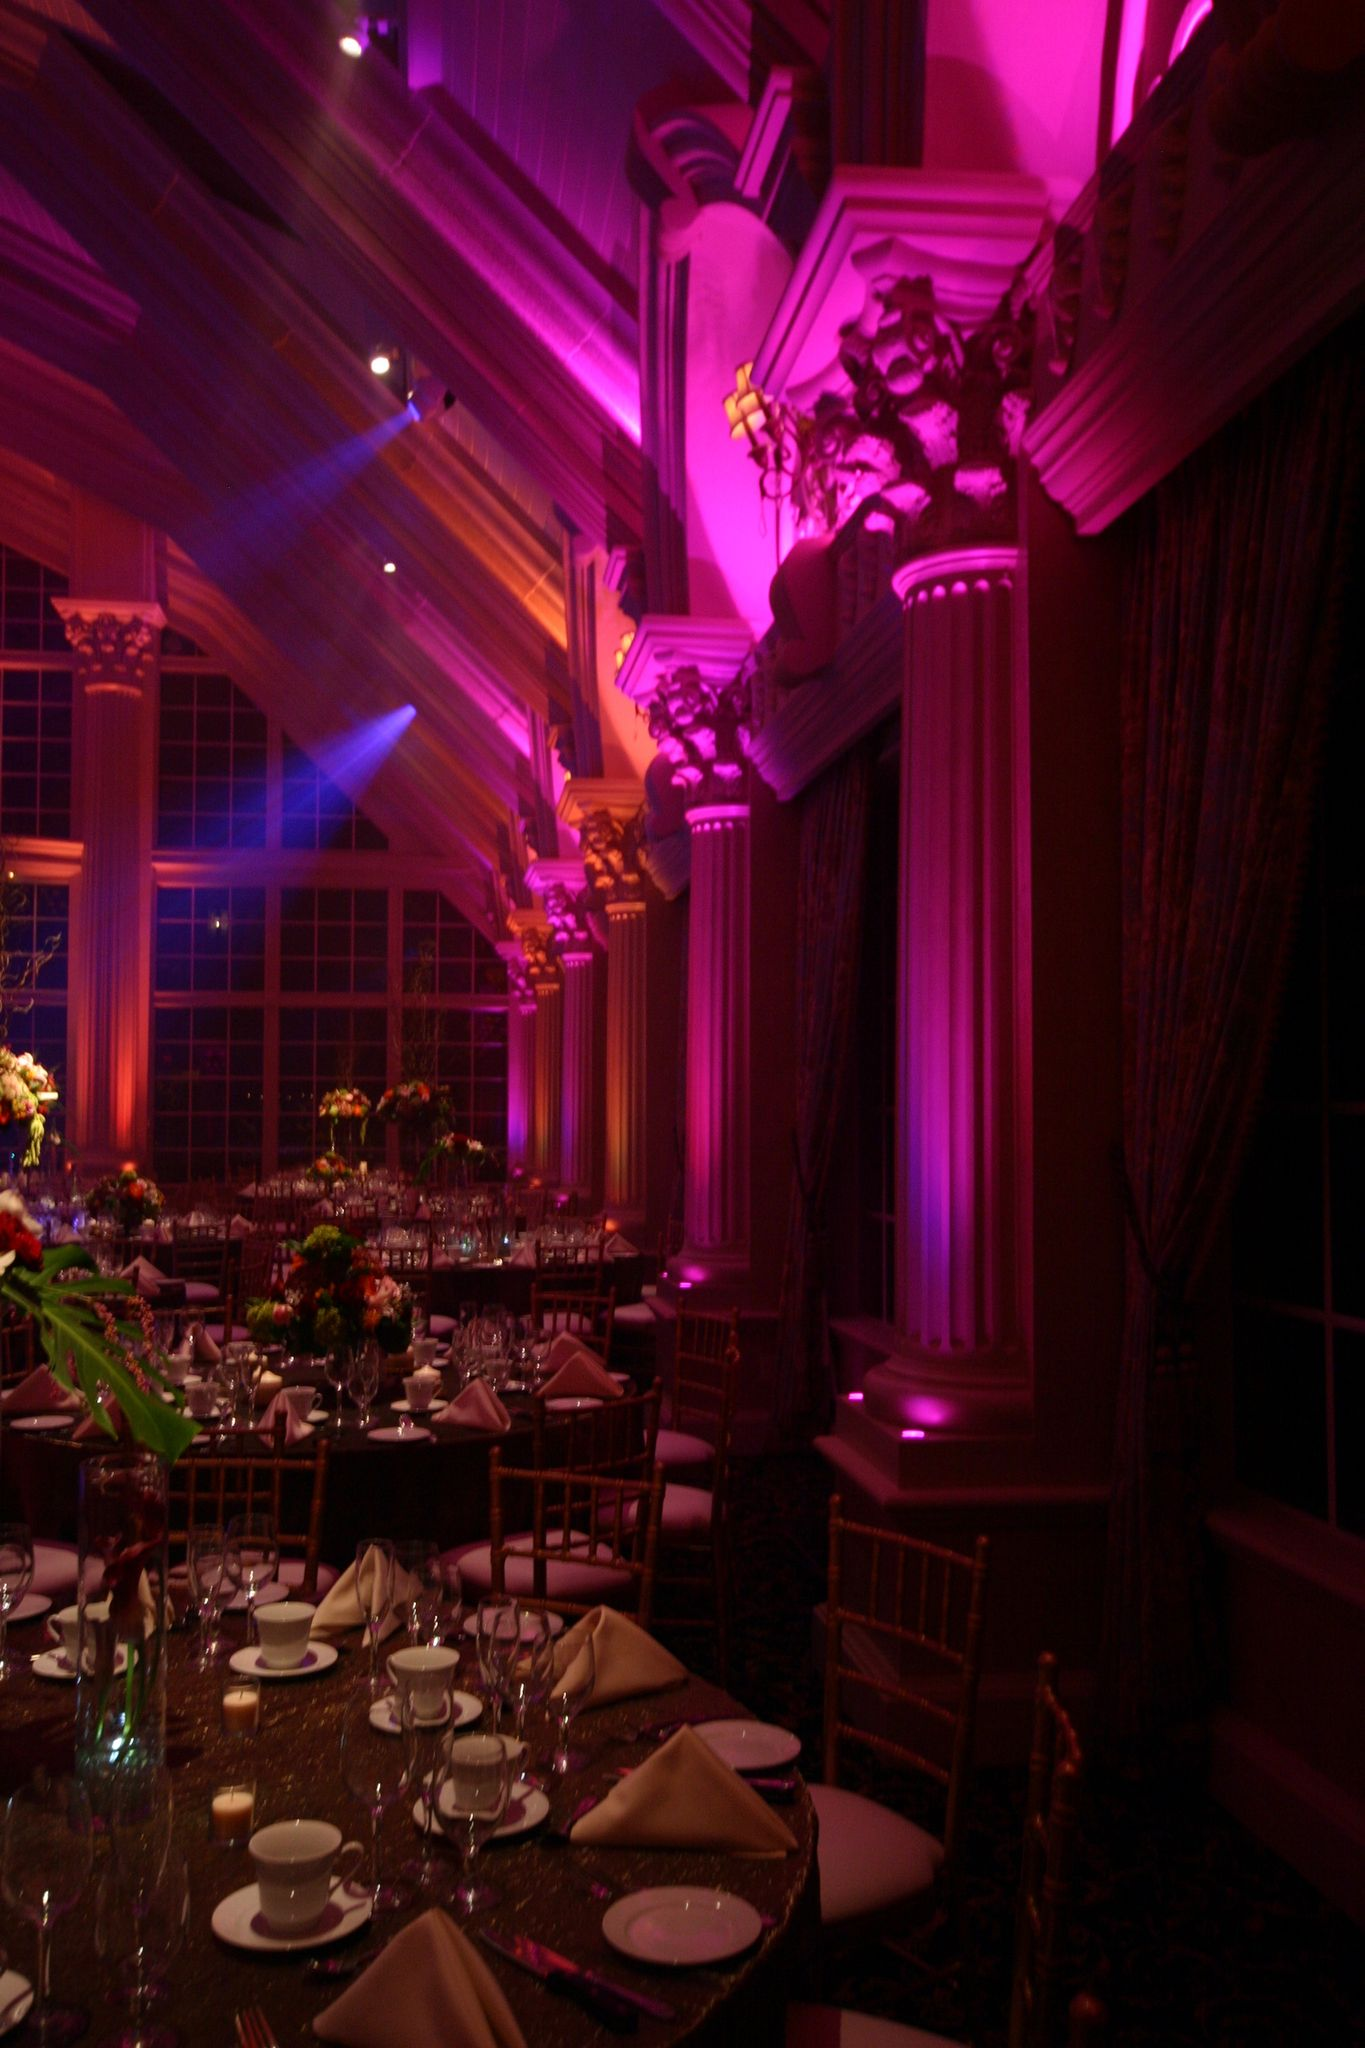 Ballroom of the Ashford Estate Allentown NJ Lighting by Fennelli Design & Ballroom of the Ashford Estate Allentown NJ Lighting by Fennelli ...